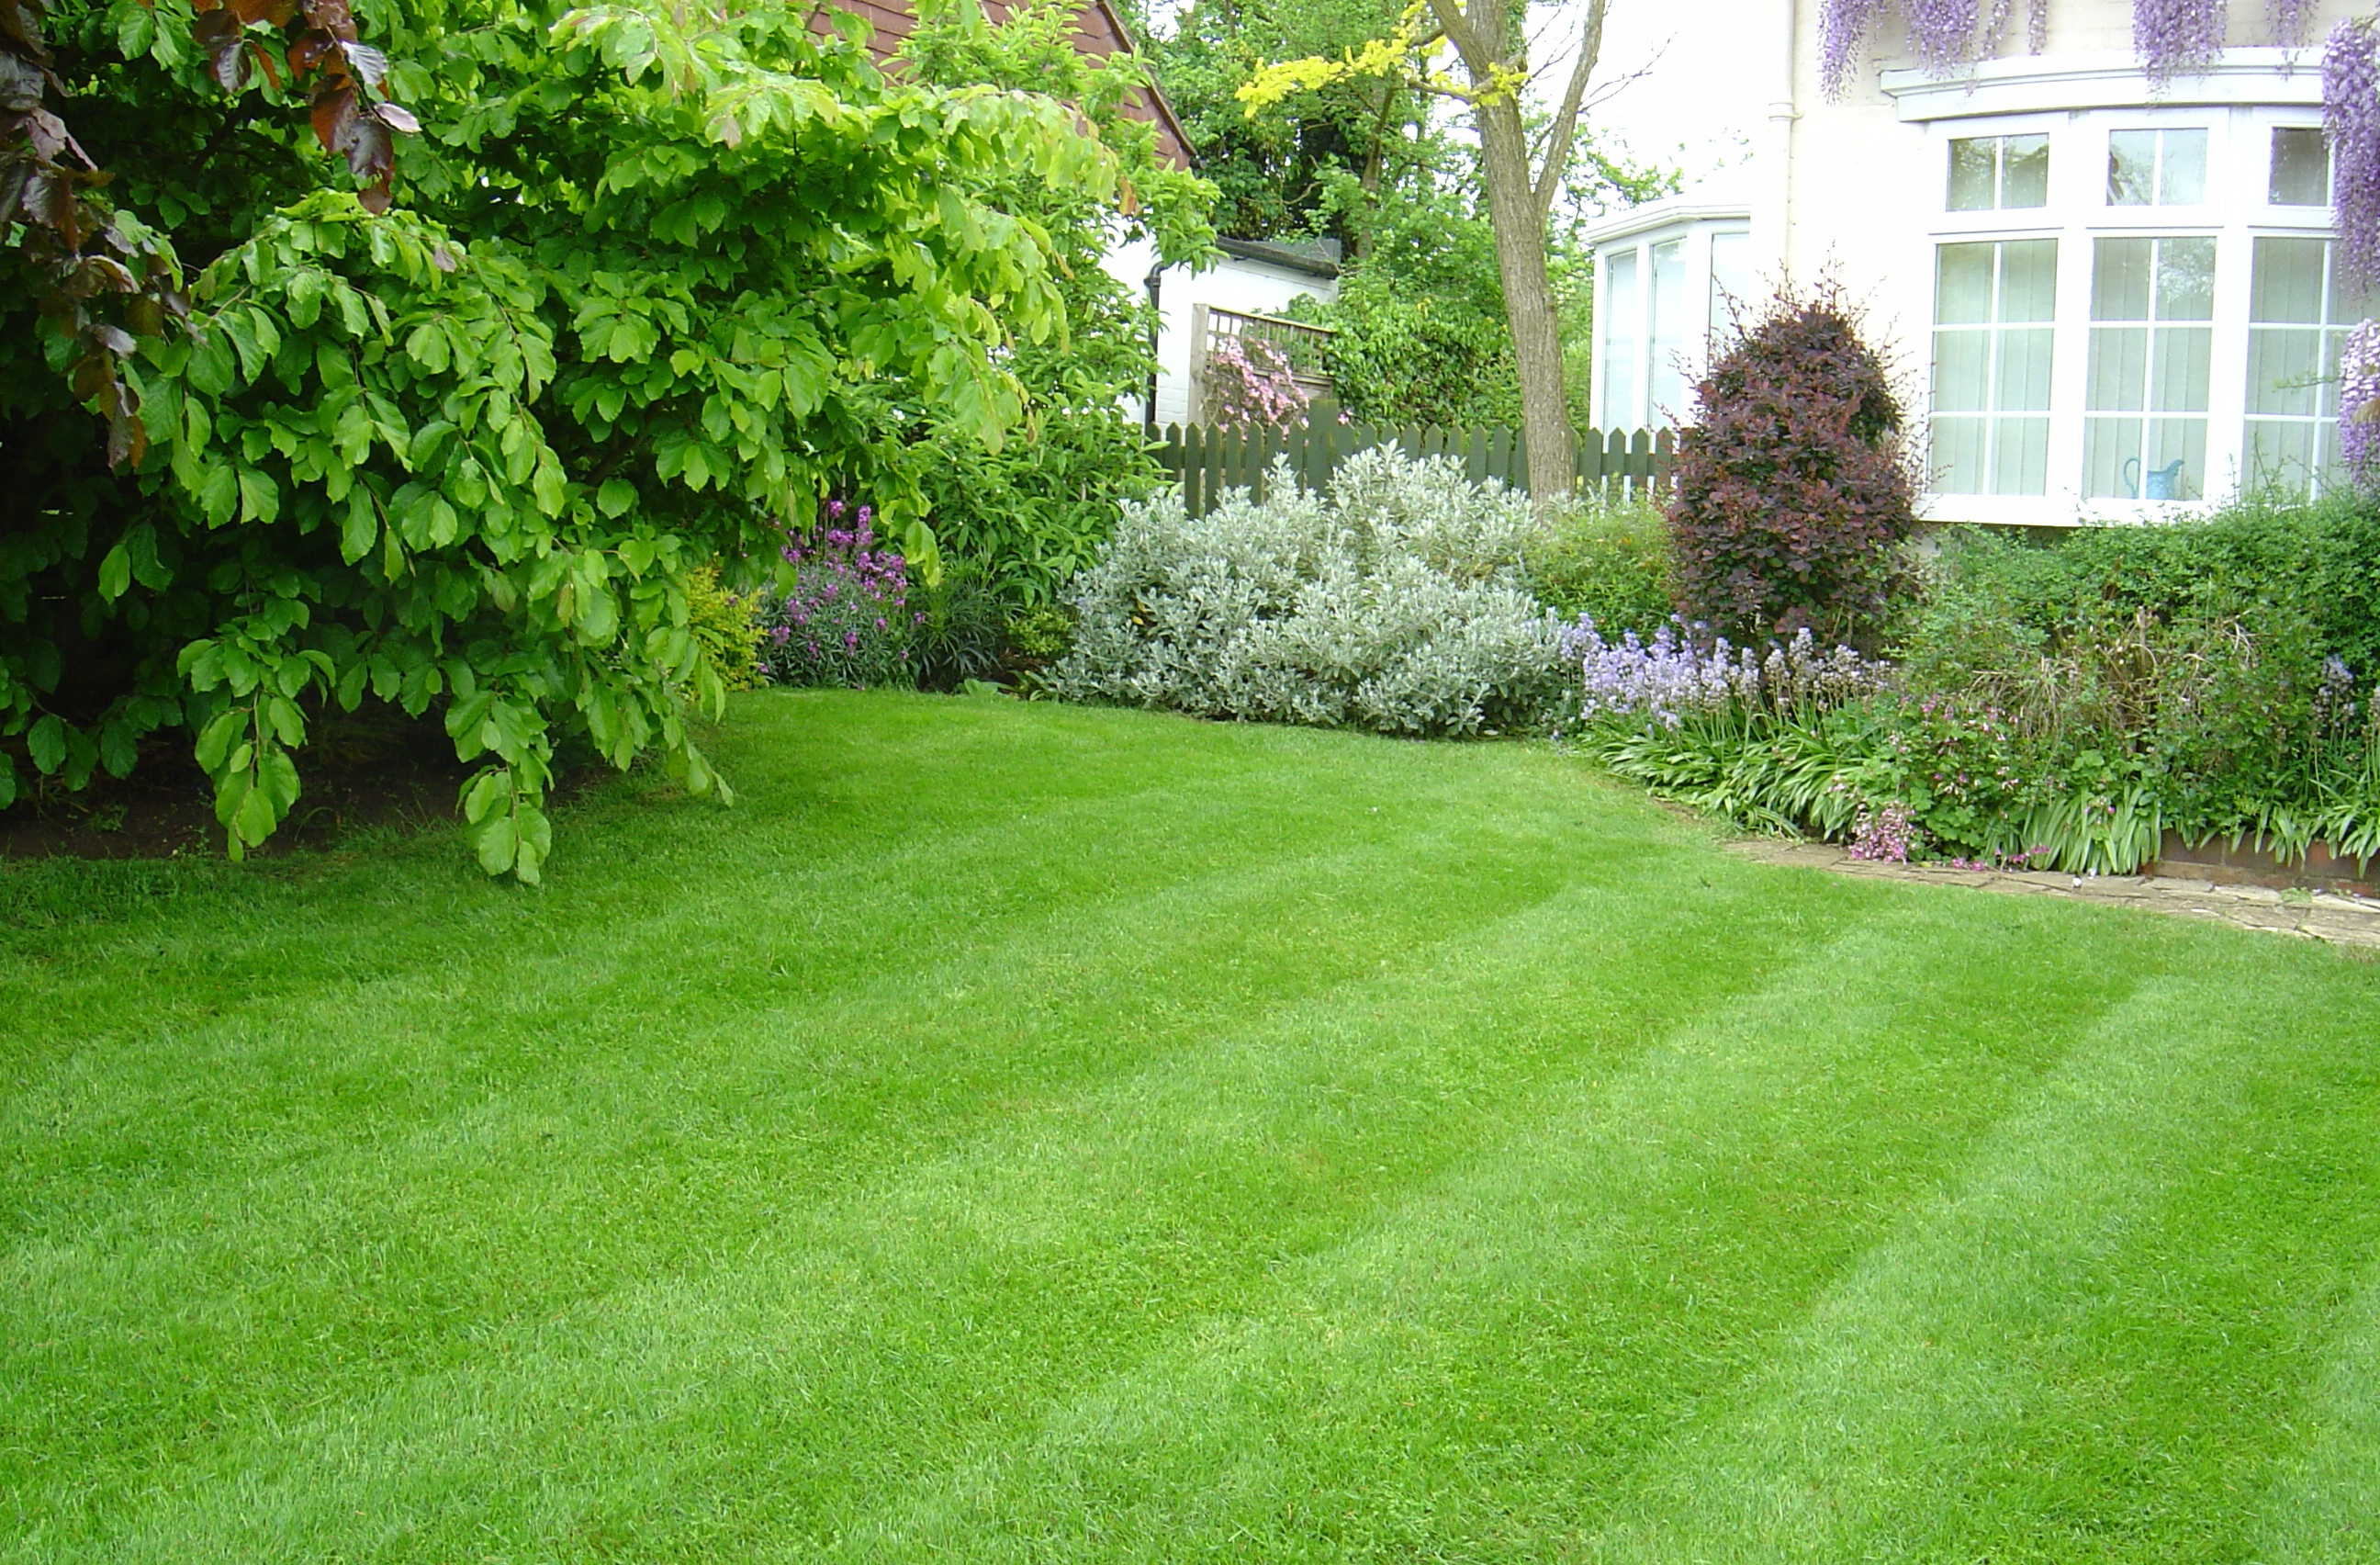 Lawn care vertopia gardens Yard and garden